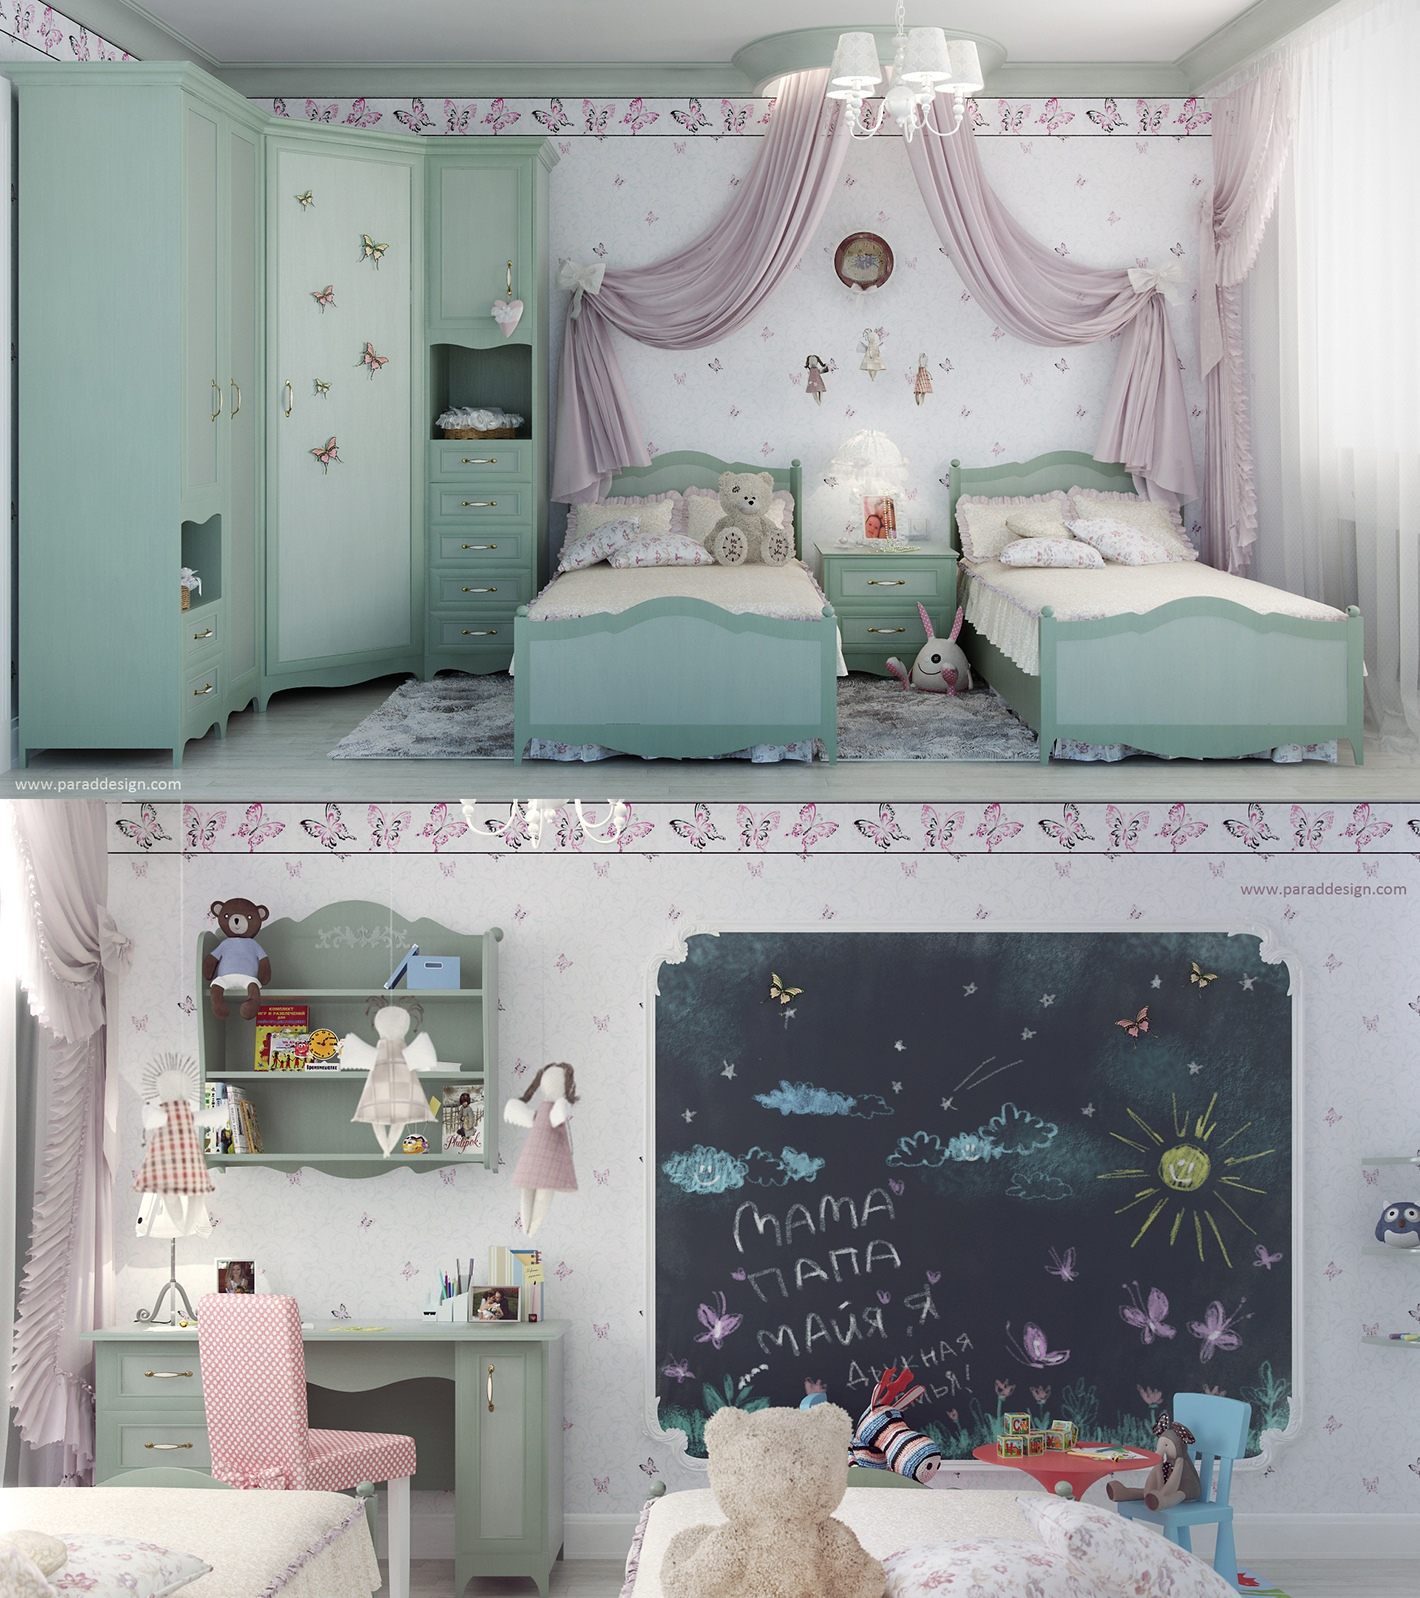 2 little girls bedroom 7 interior design ideas - Bed for girls room ...